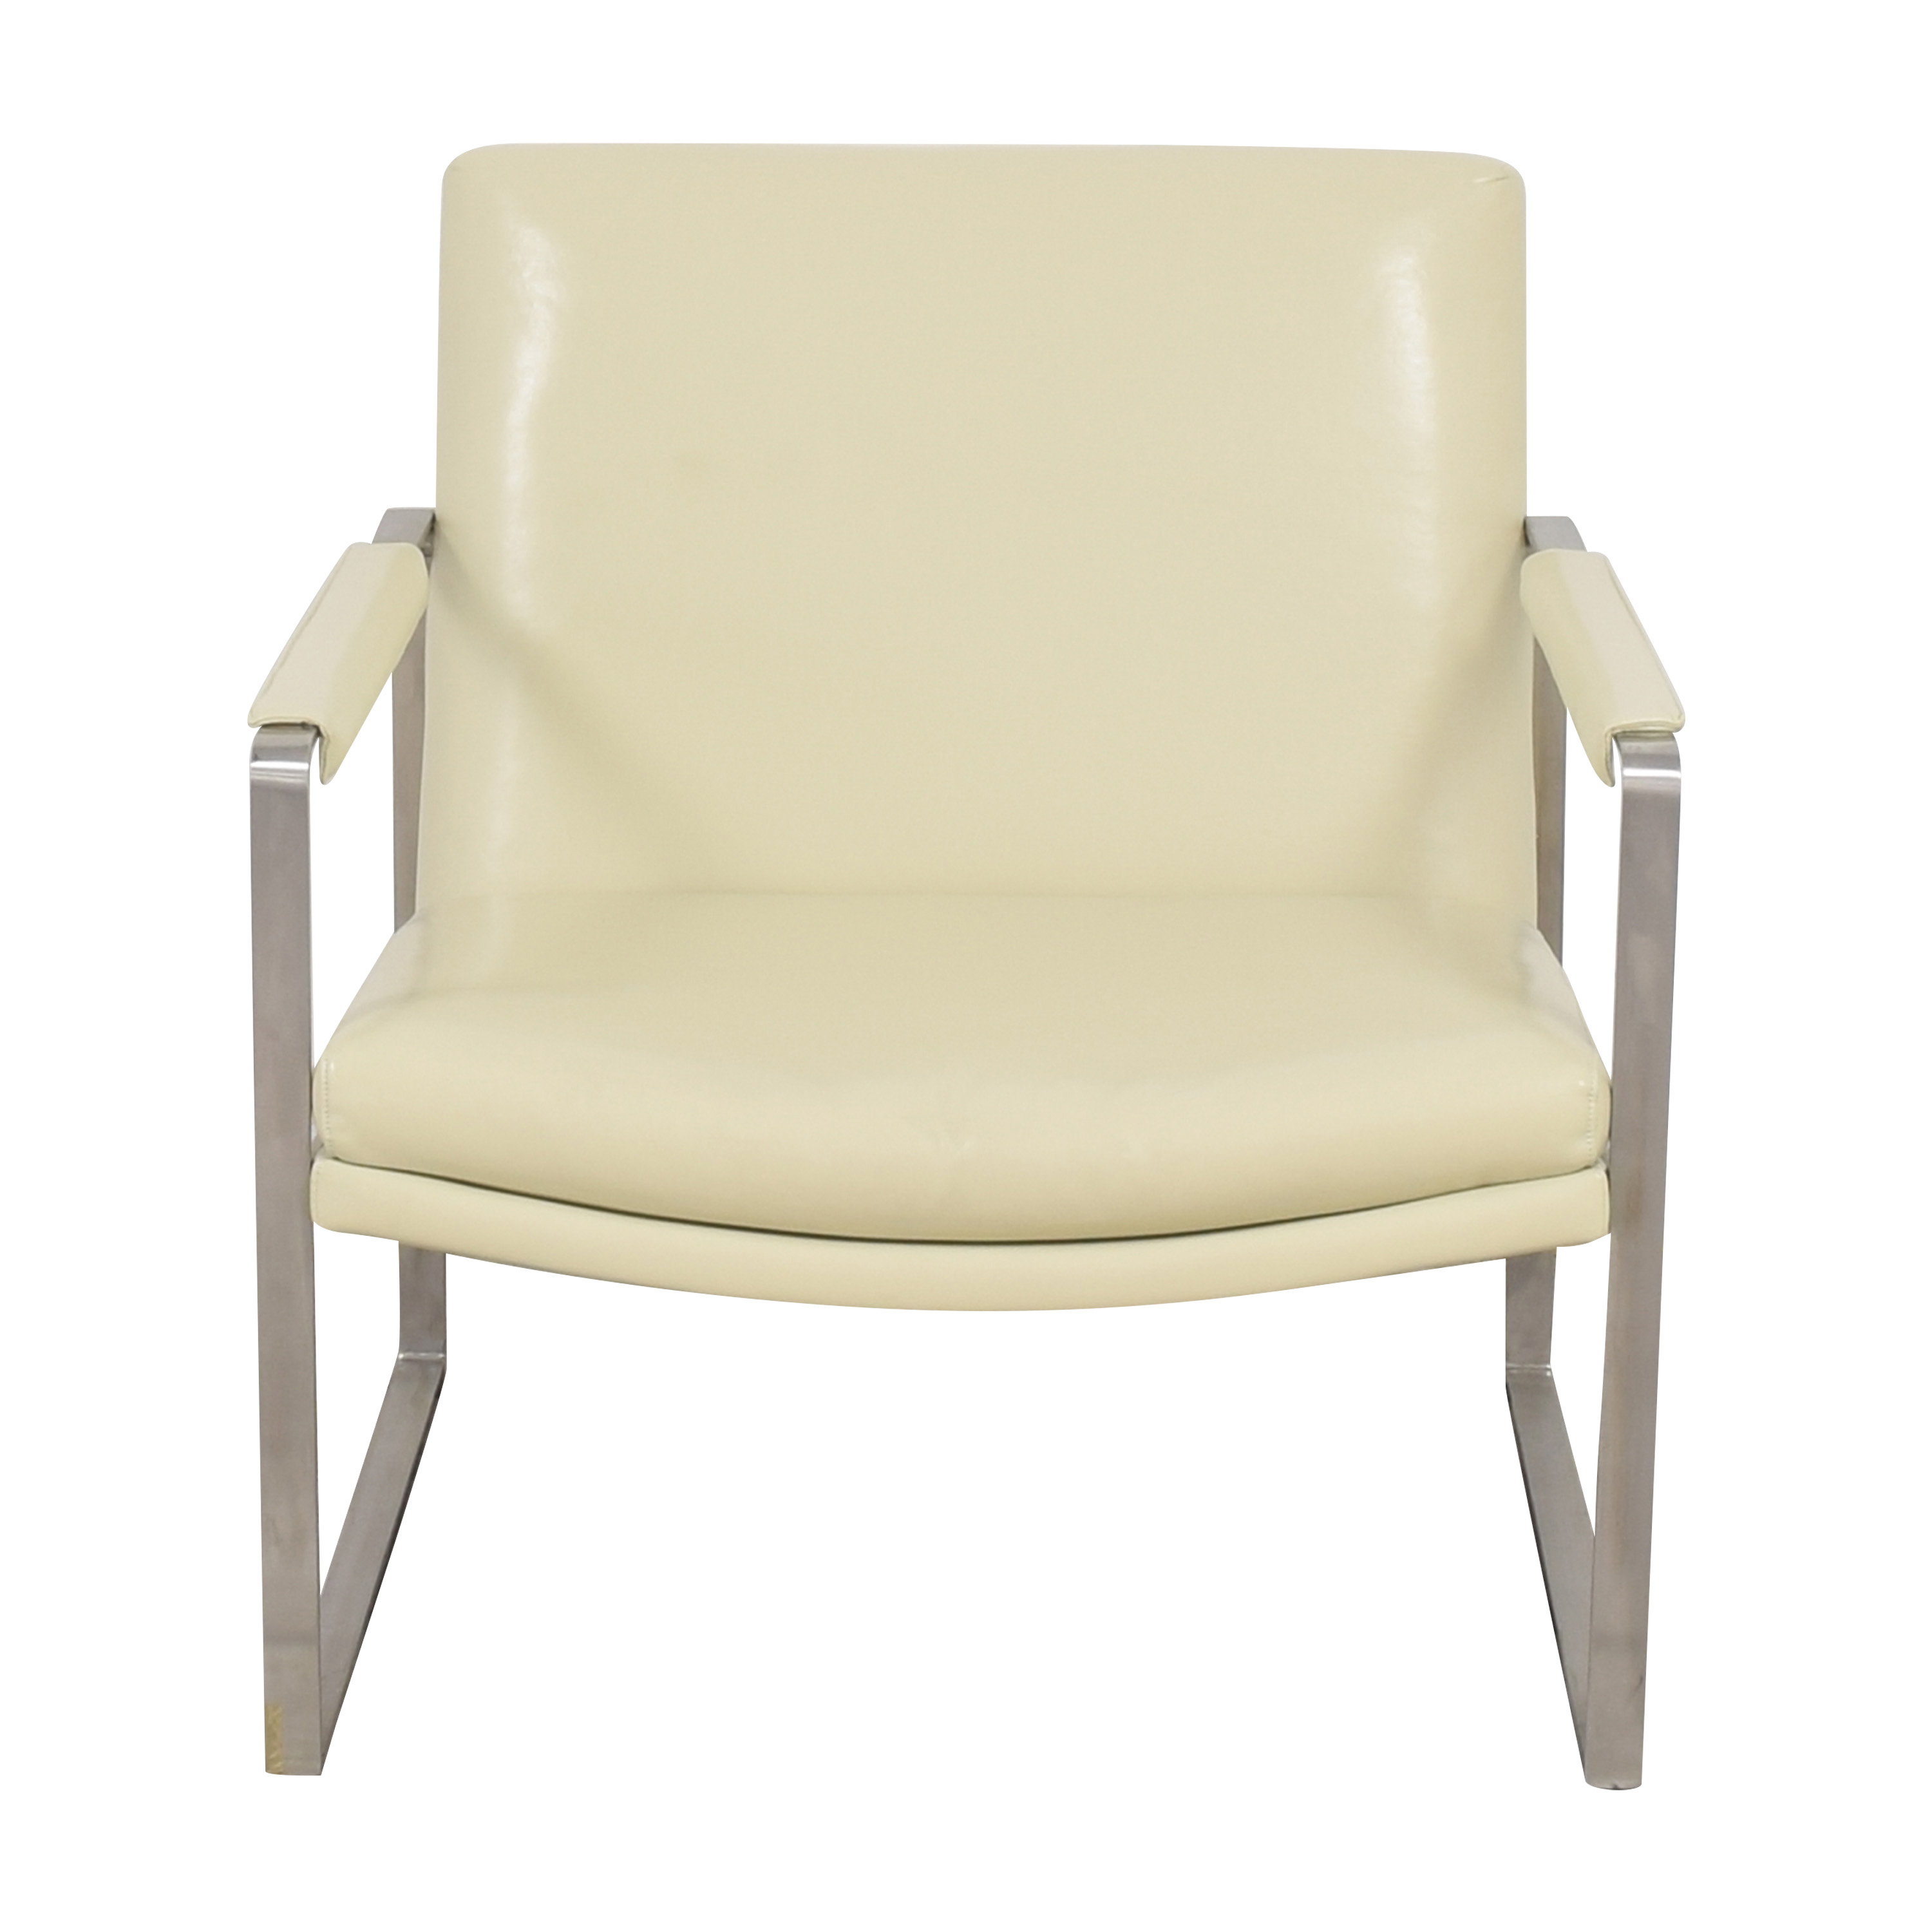 Modloft Charles Lounge Chair / Accent Chairs